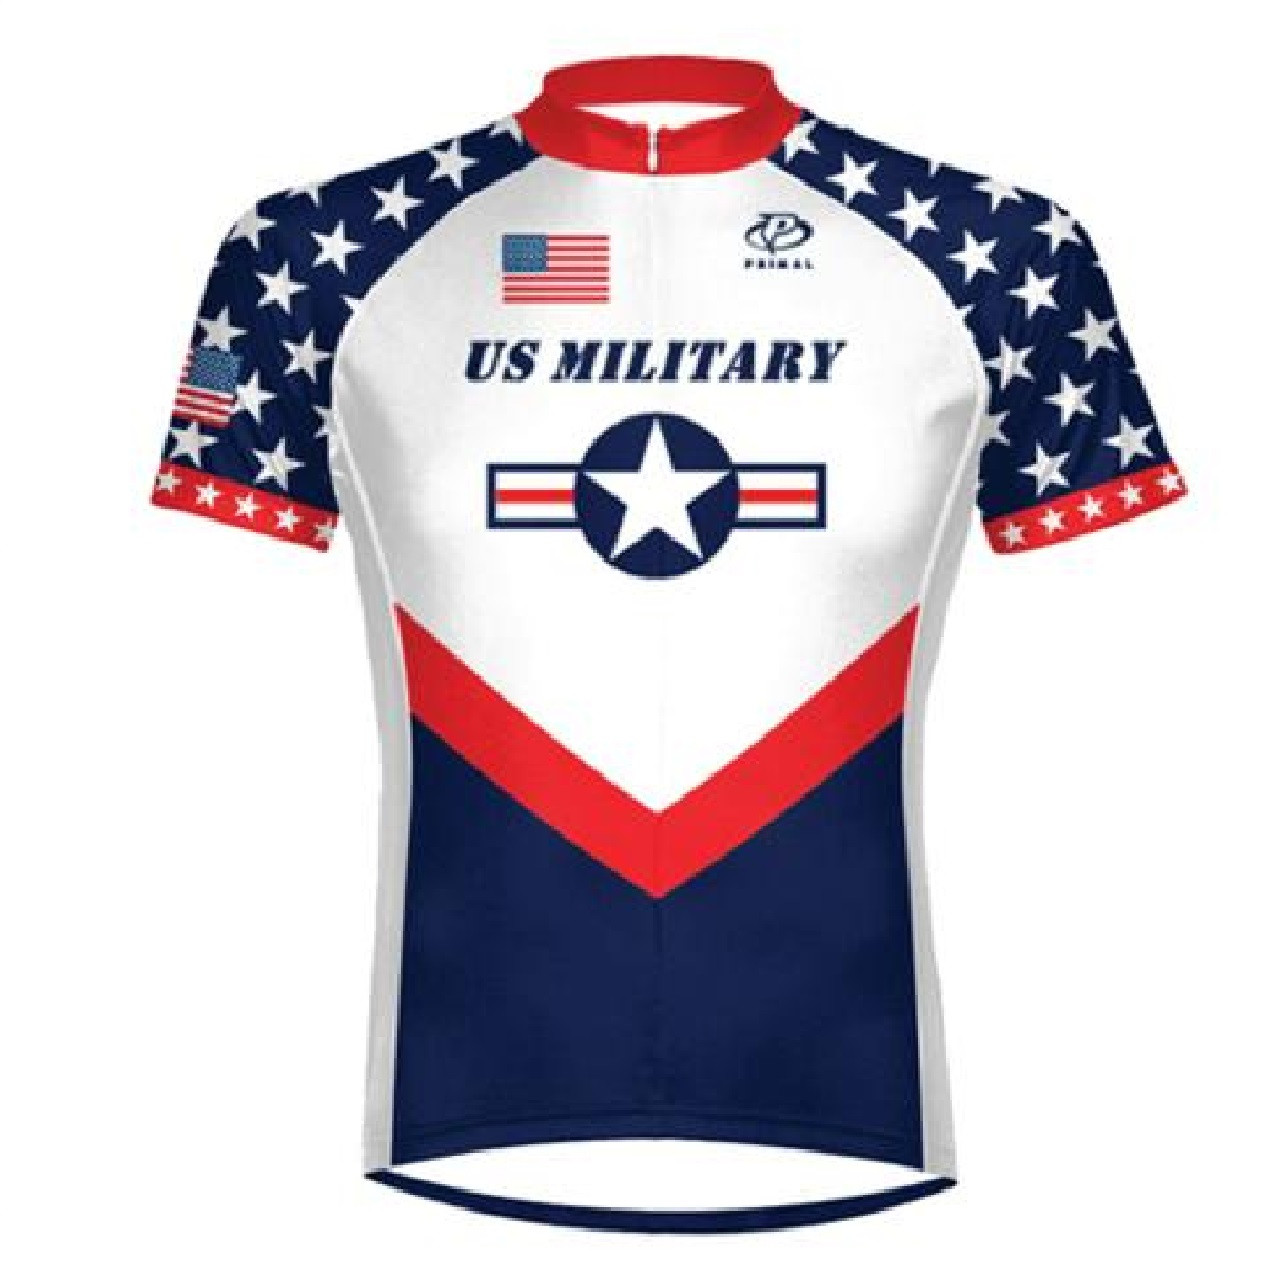 87b3d2b97 Add to Wish List. Click the button below to add the Primal Wear US Military  Team Men s 3 4 zip Sport Cut Cycling Jersey ...